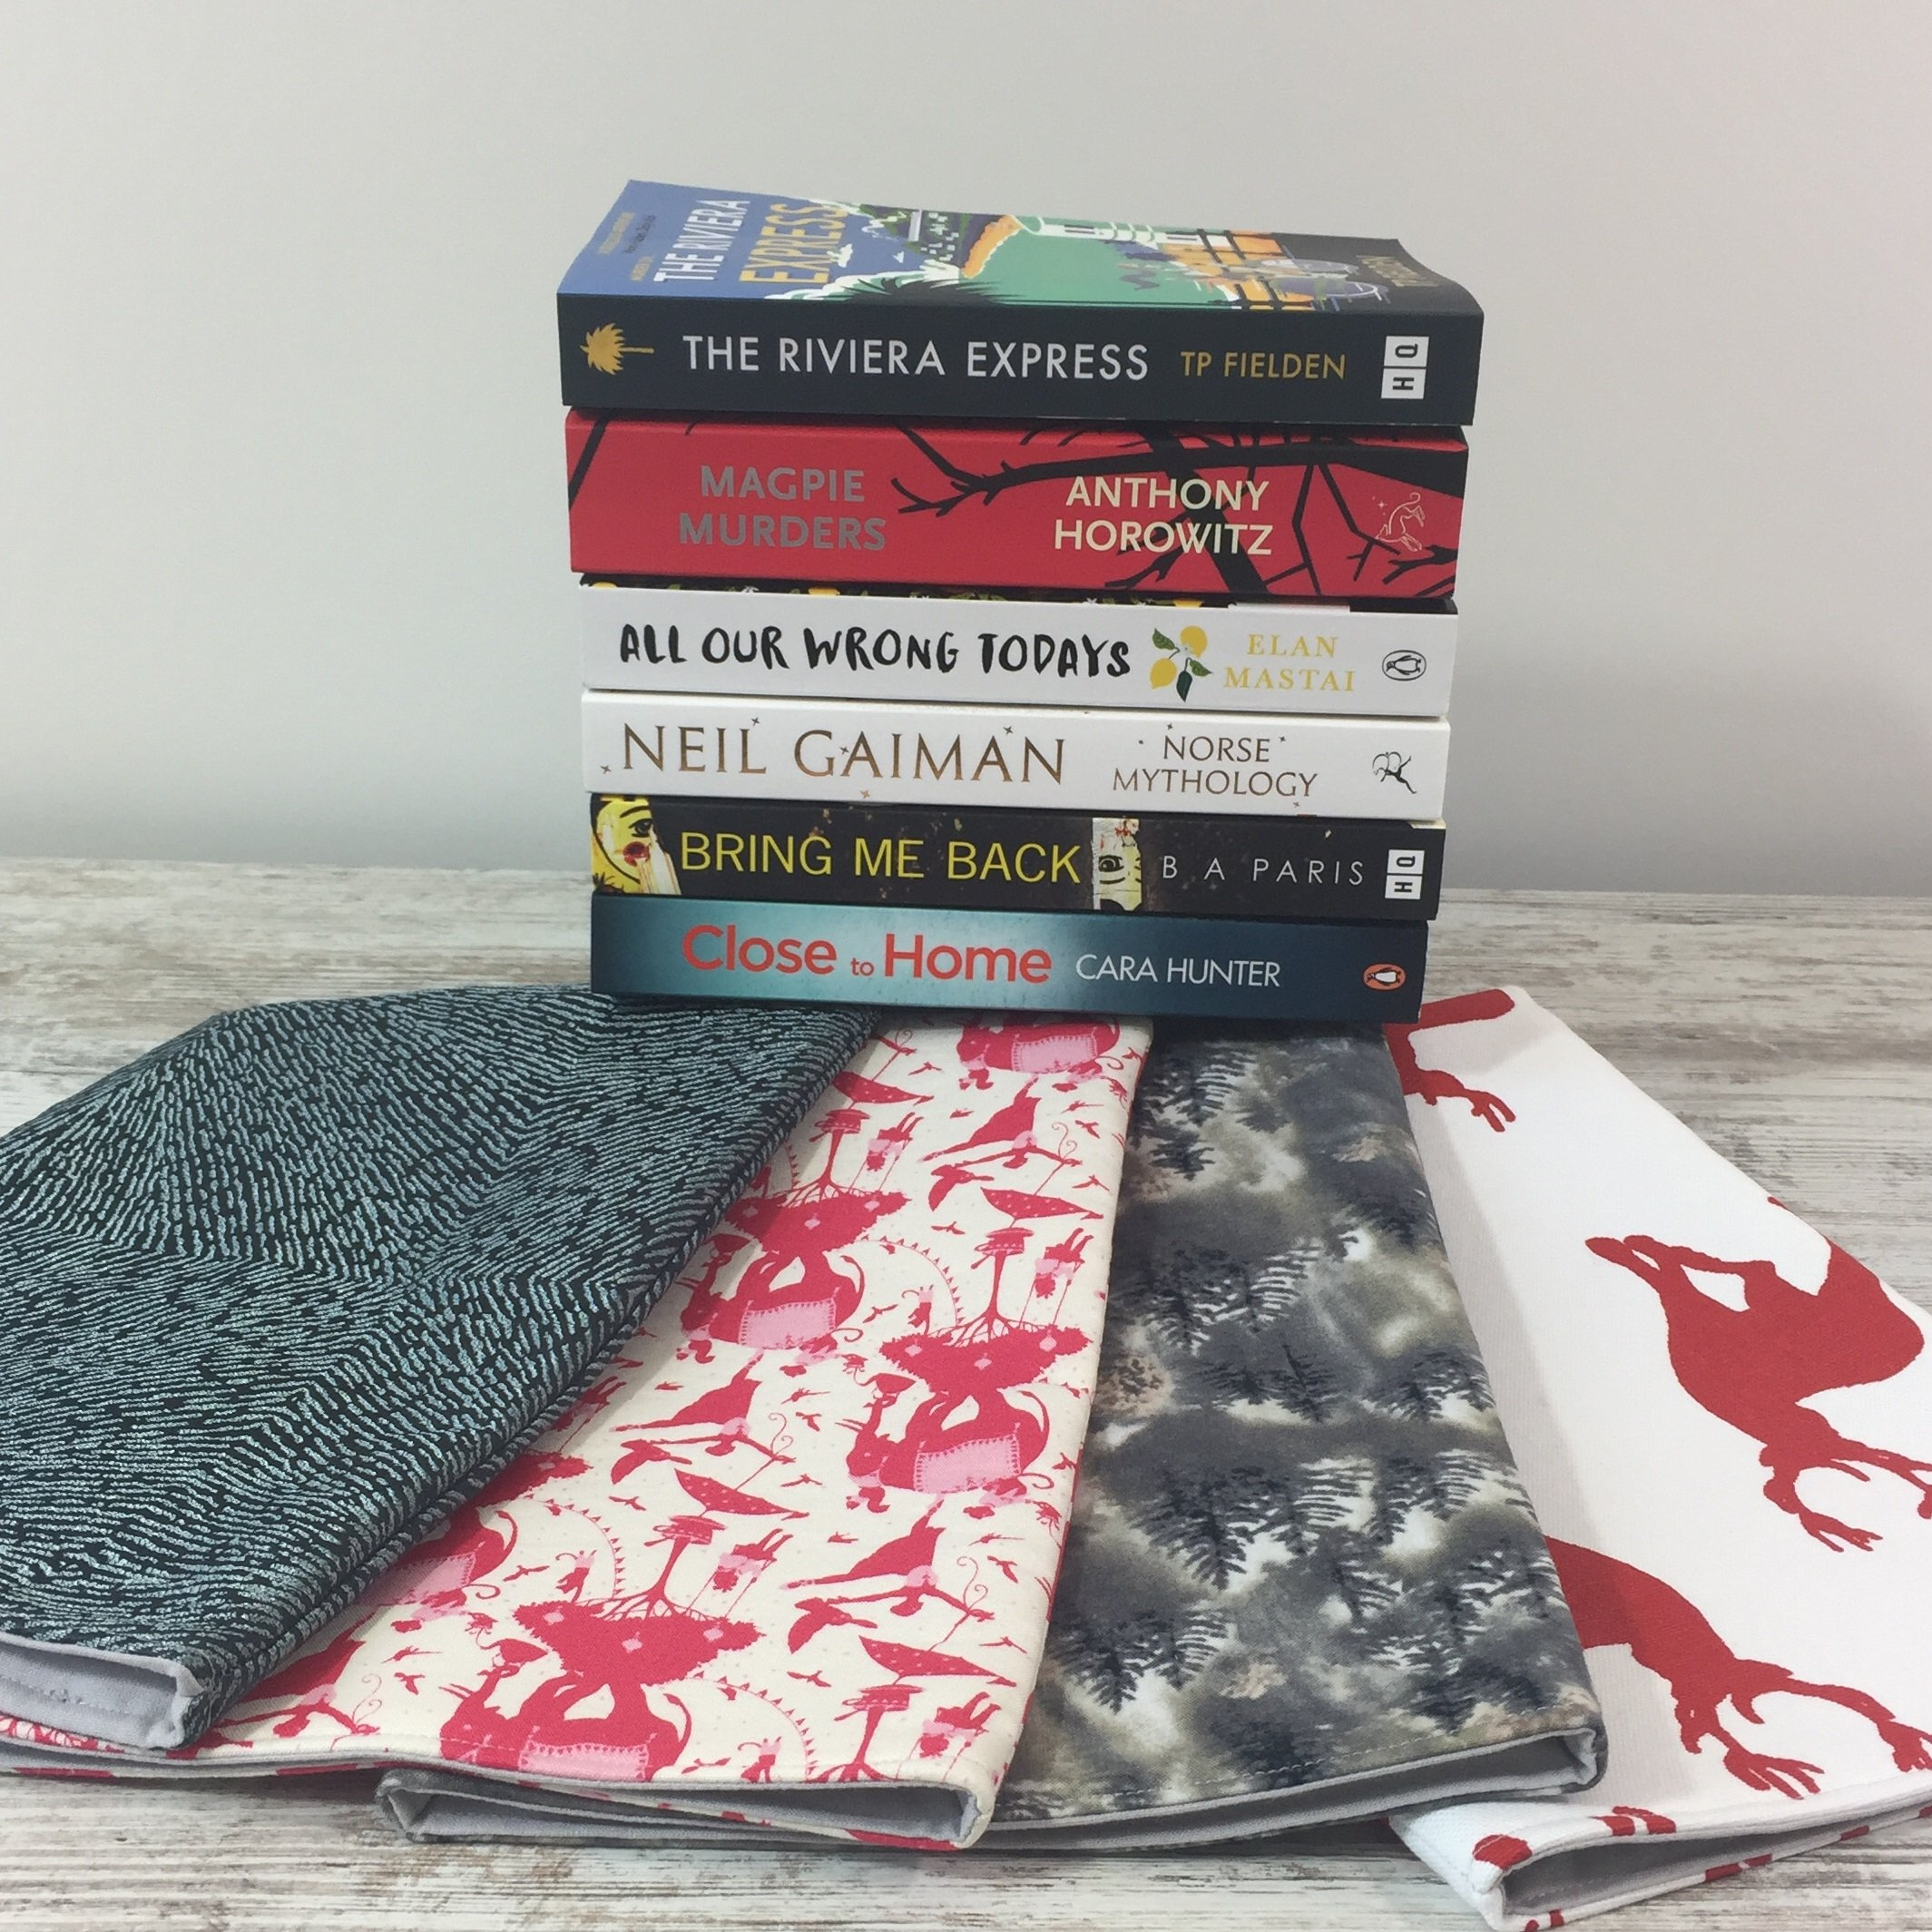 4 book sleeves and all 6 books